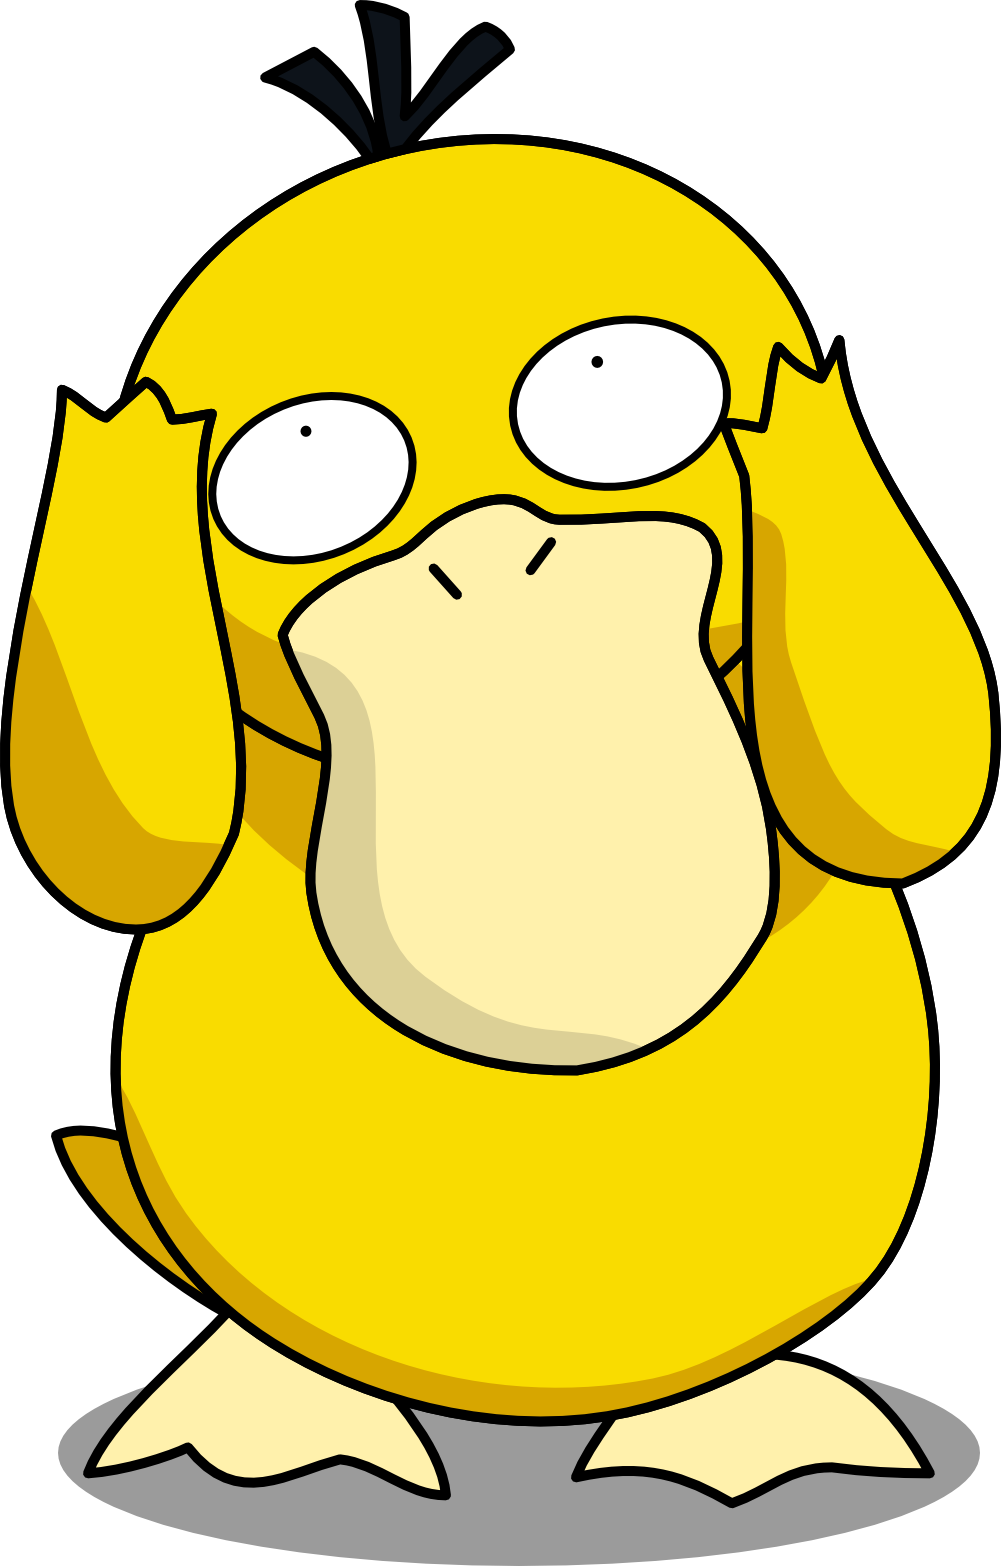 pokemon psyduck wallpaper 1920x1080 - photo #25